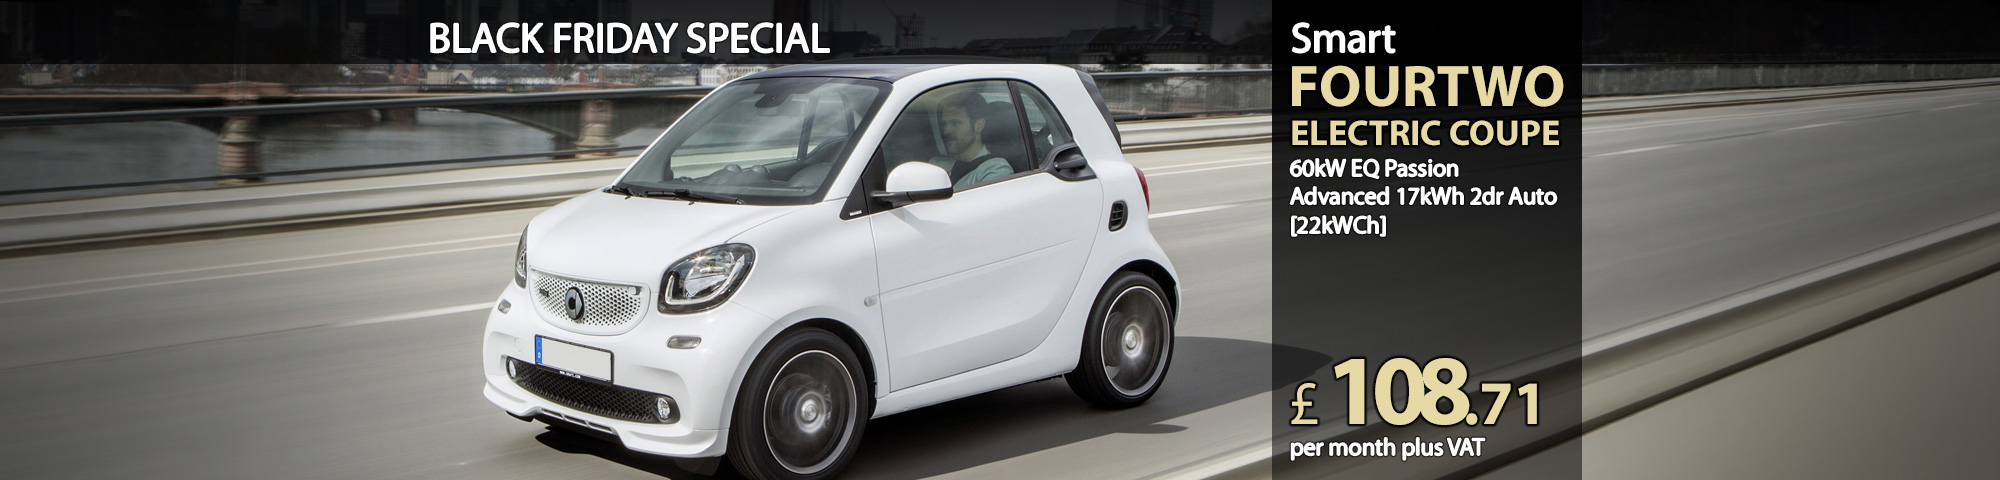 Smart FORTWO ELECTRIC COUPE 60kW EQ Passion Advanced 17kWh 2dr Auto